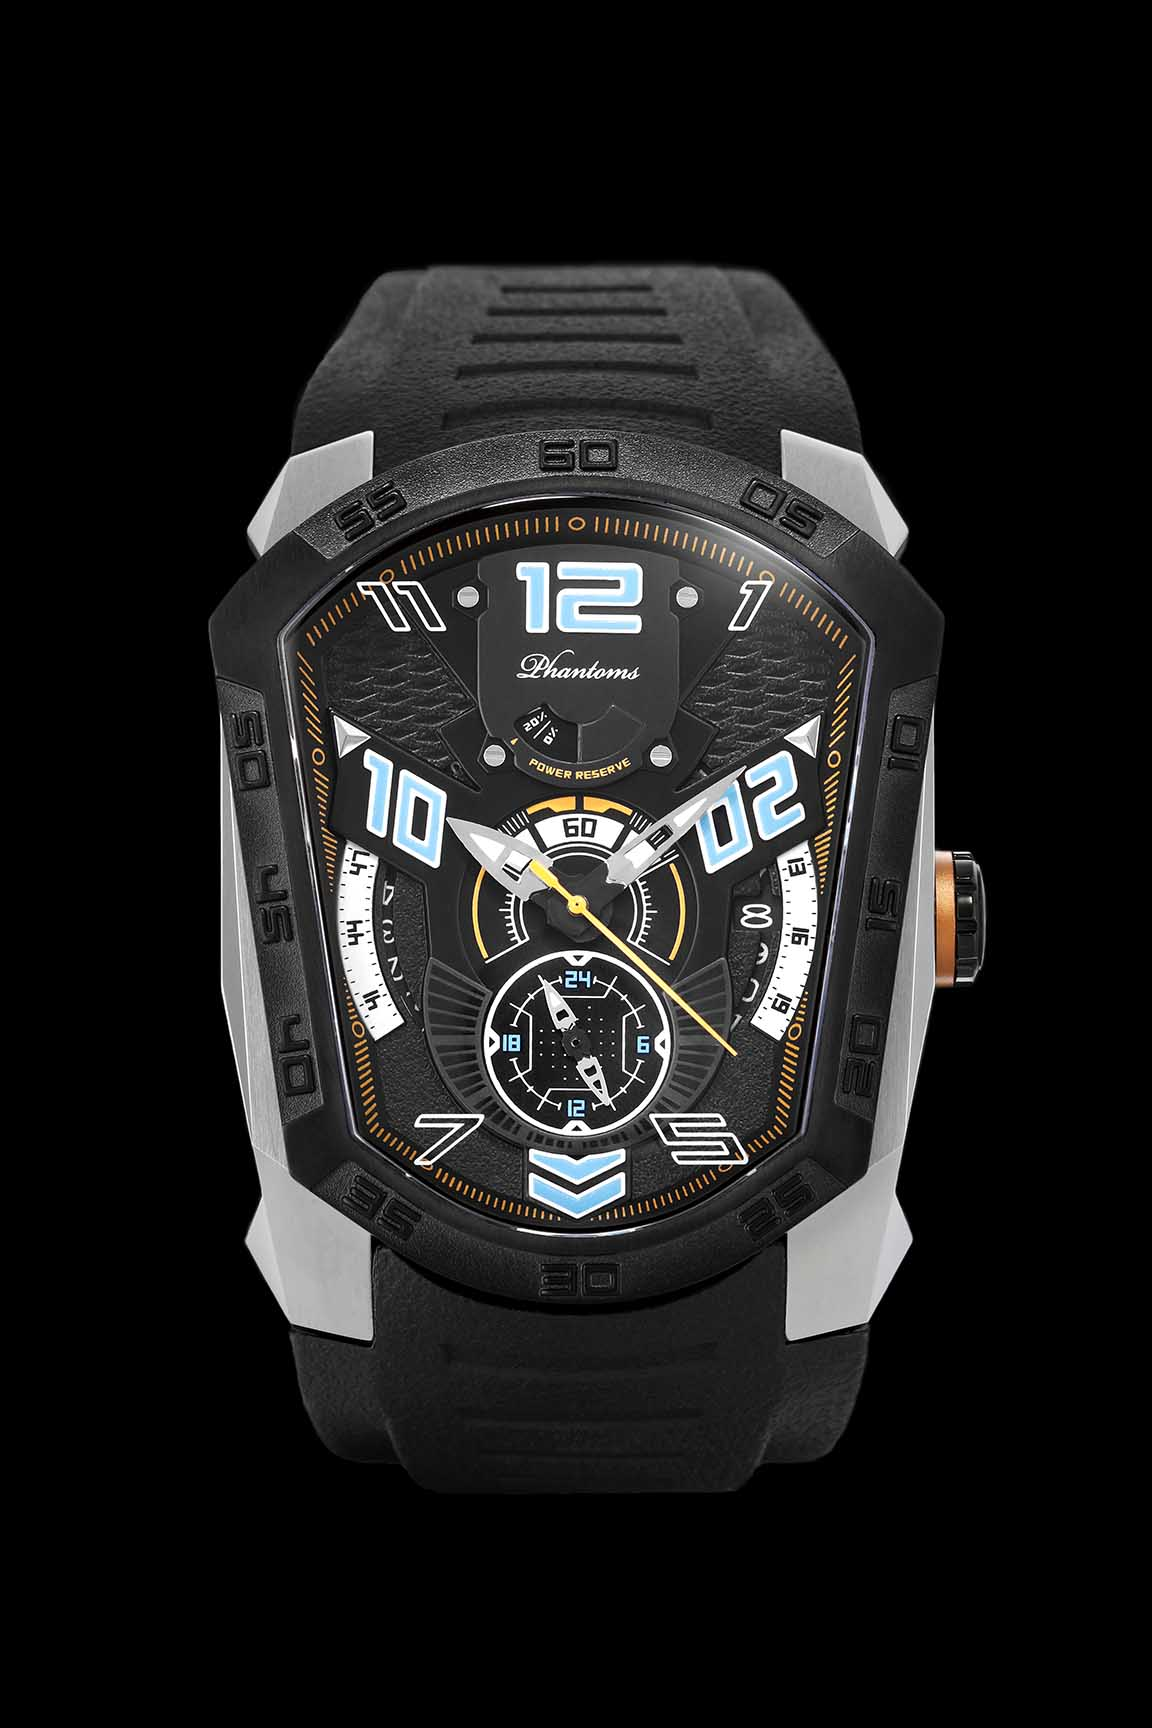 Spearic Laser Series Japanese Miyota Automatic Watch, Phantoms Watch Tourbillon, Sporty Mechanical Watch For Men